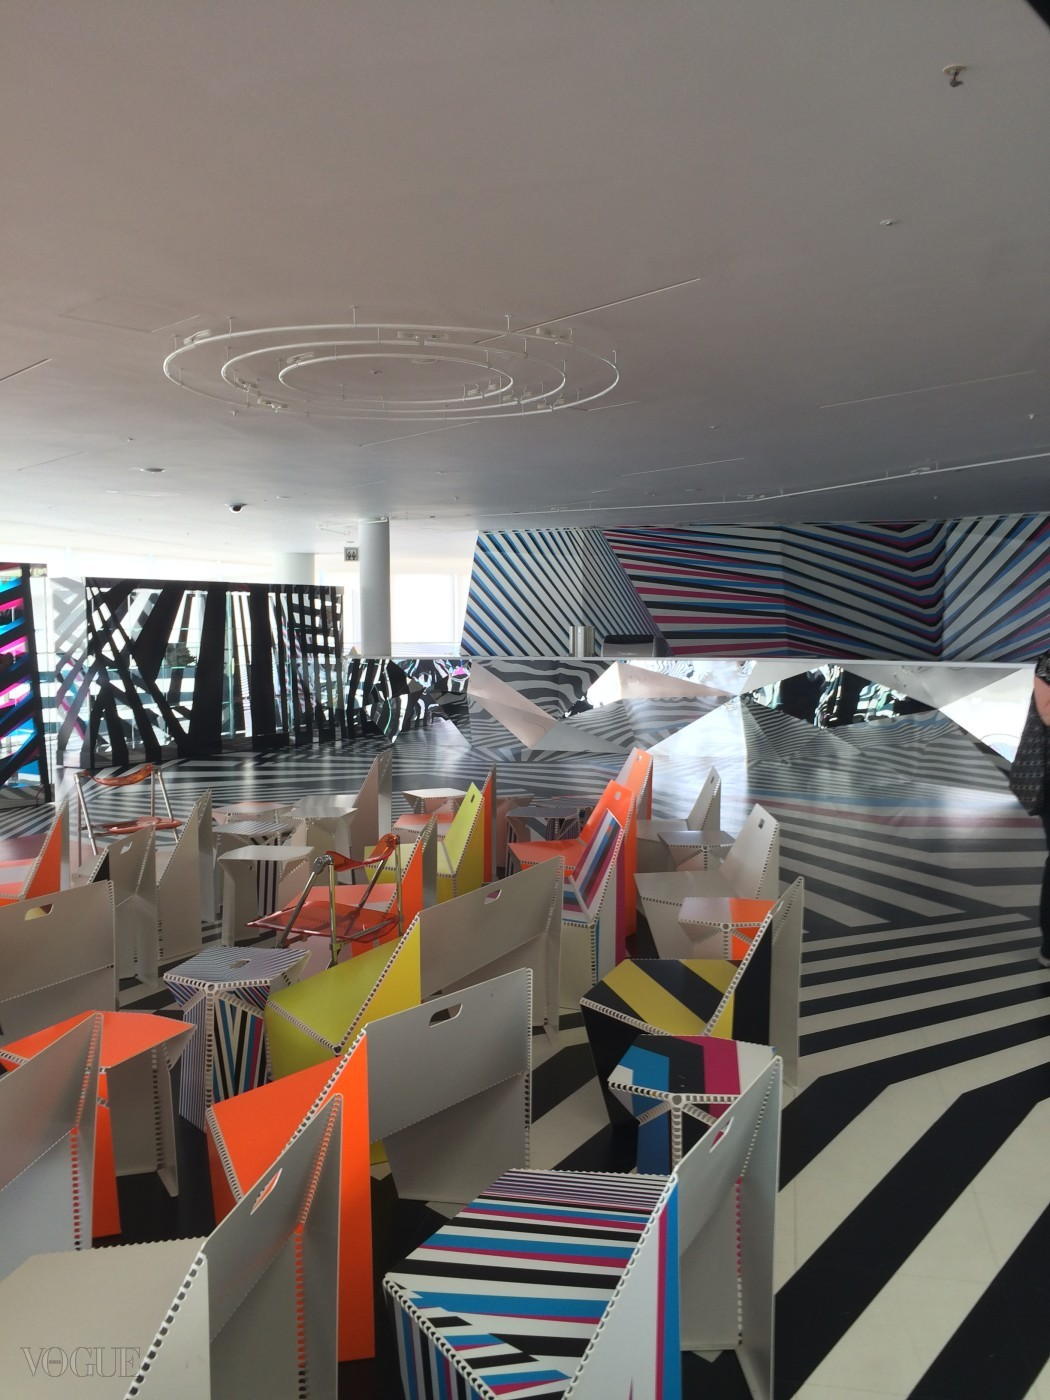 The Leeum Samsung Museum of Art in Seoul by Suzy Menkes 2